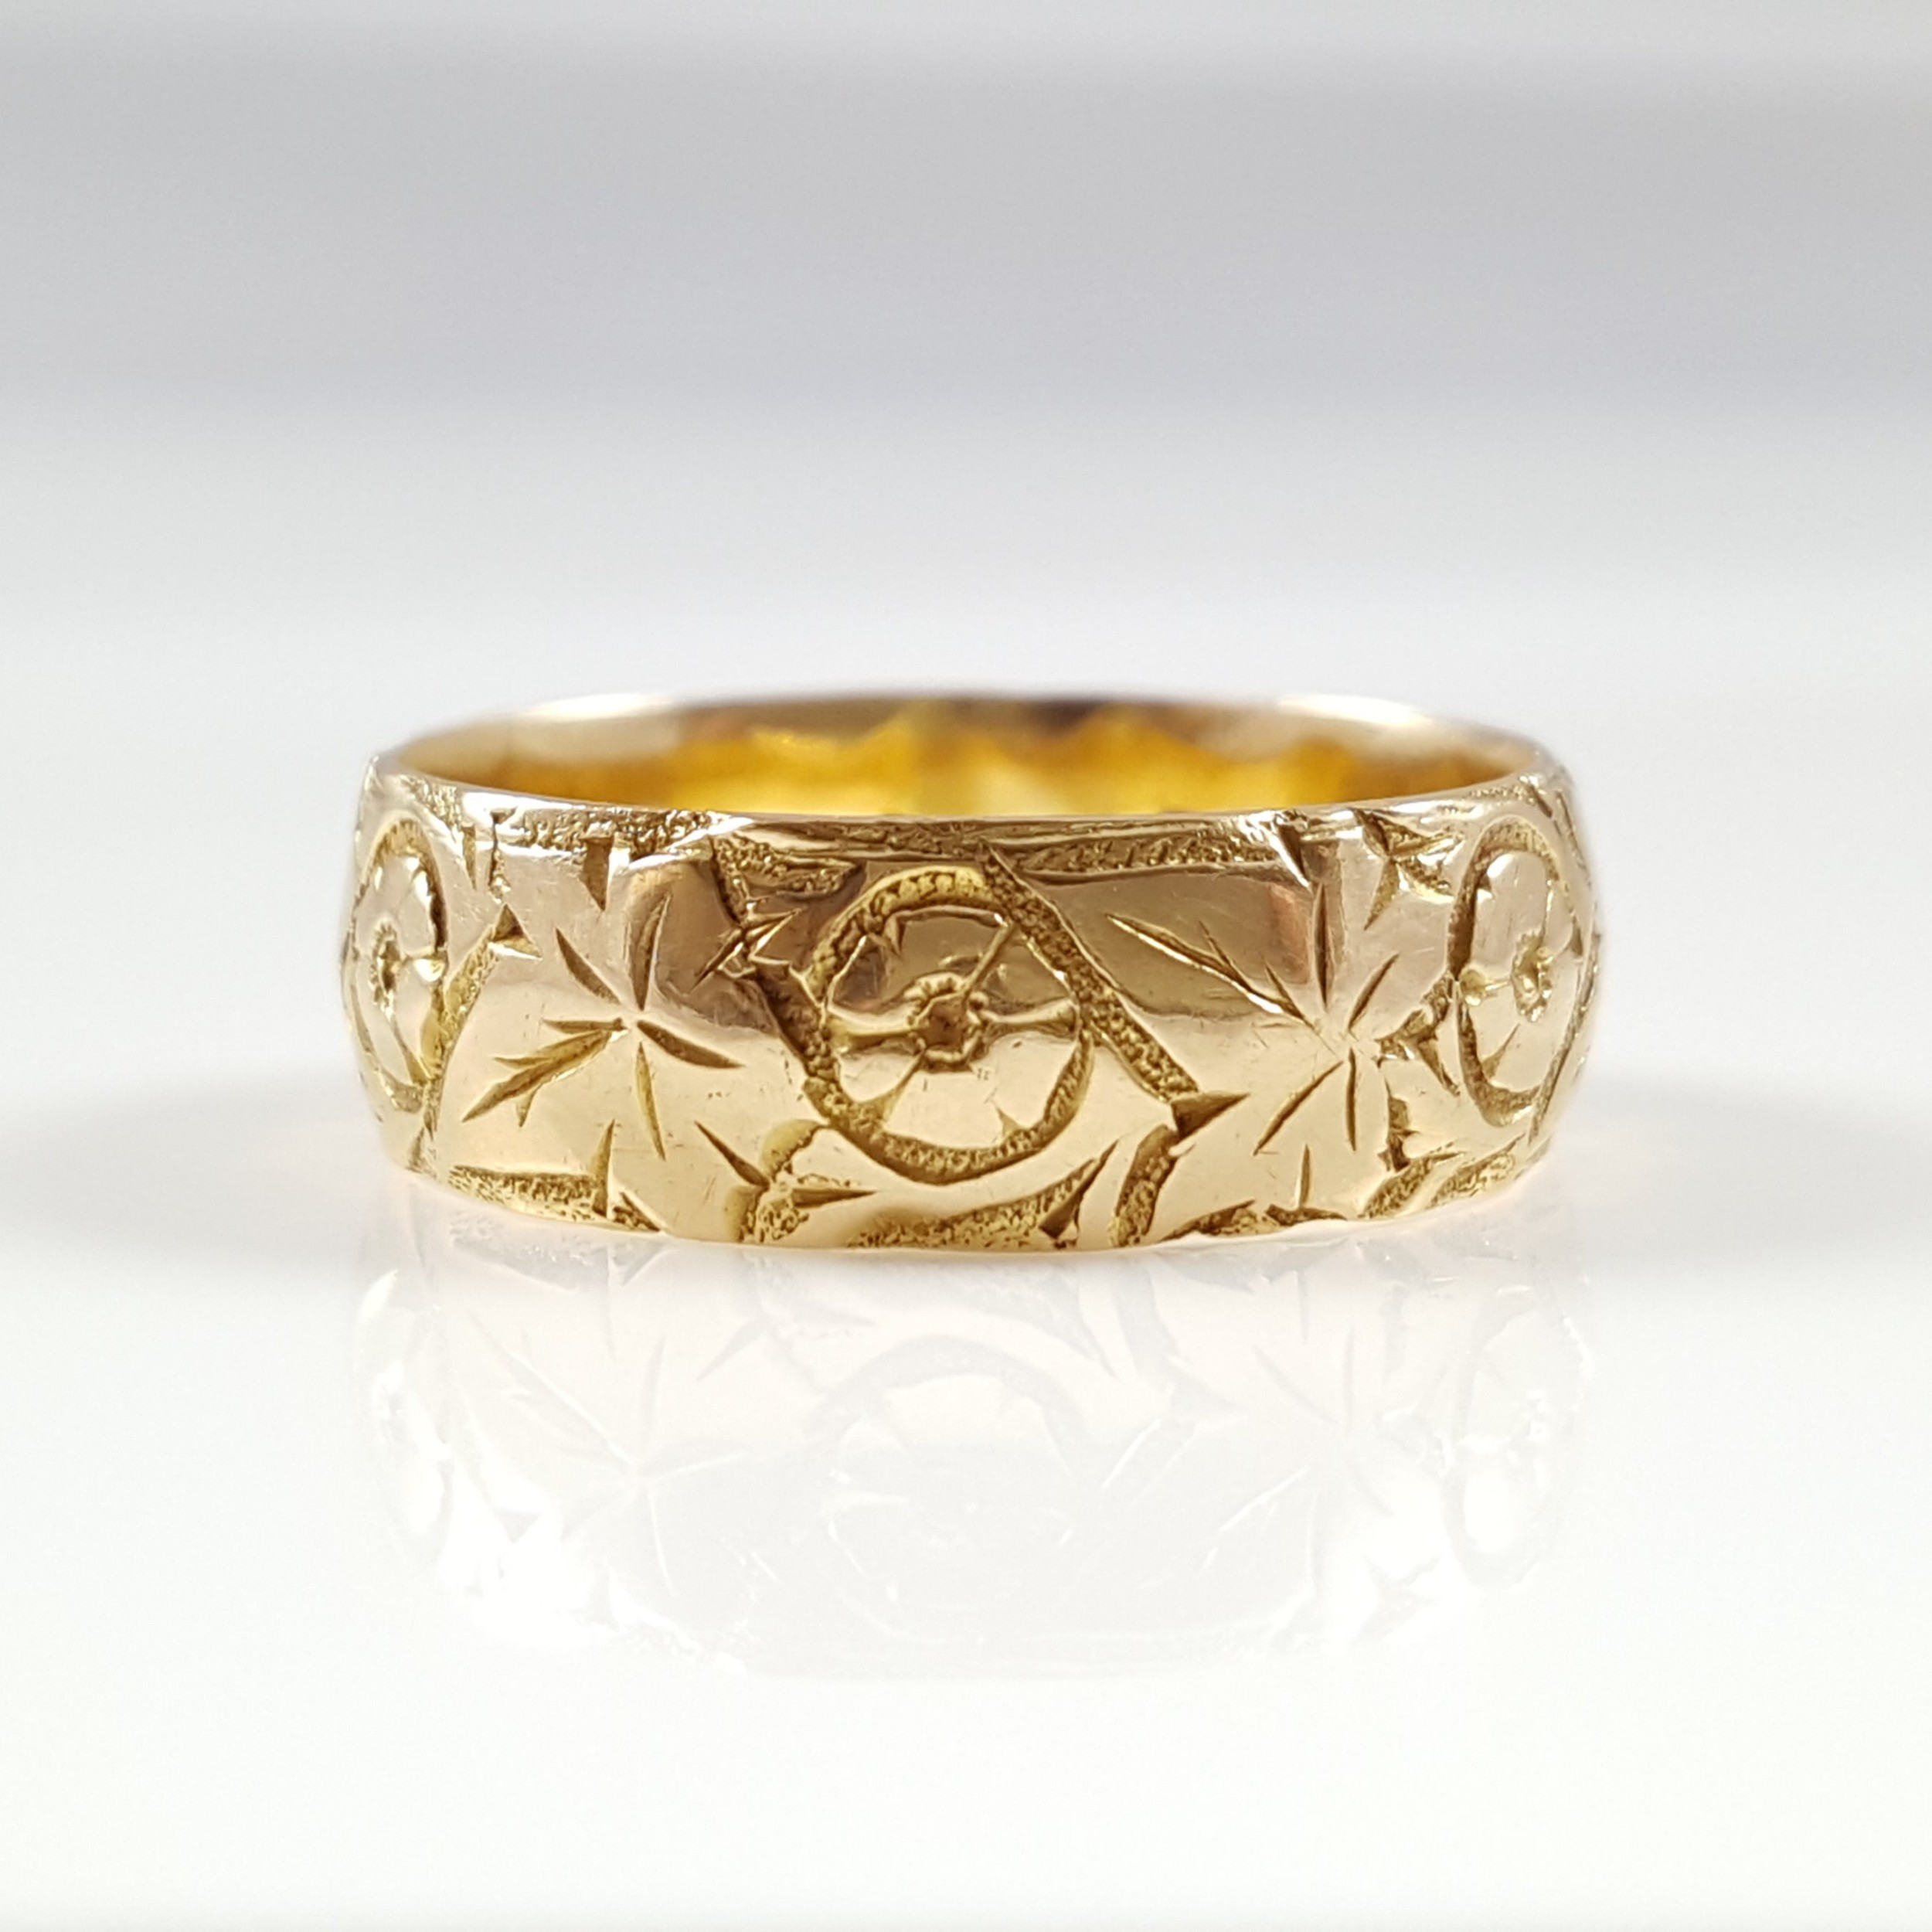 customized ring daniel printed printing by rings pinshape edge wedding items gd girgis